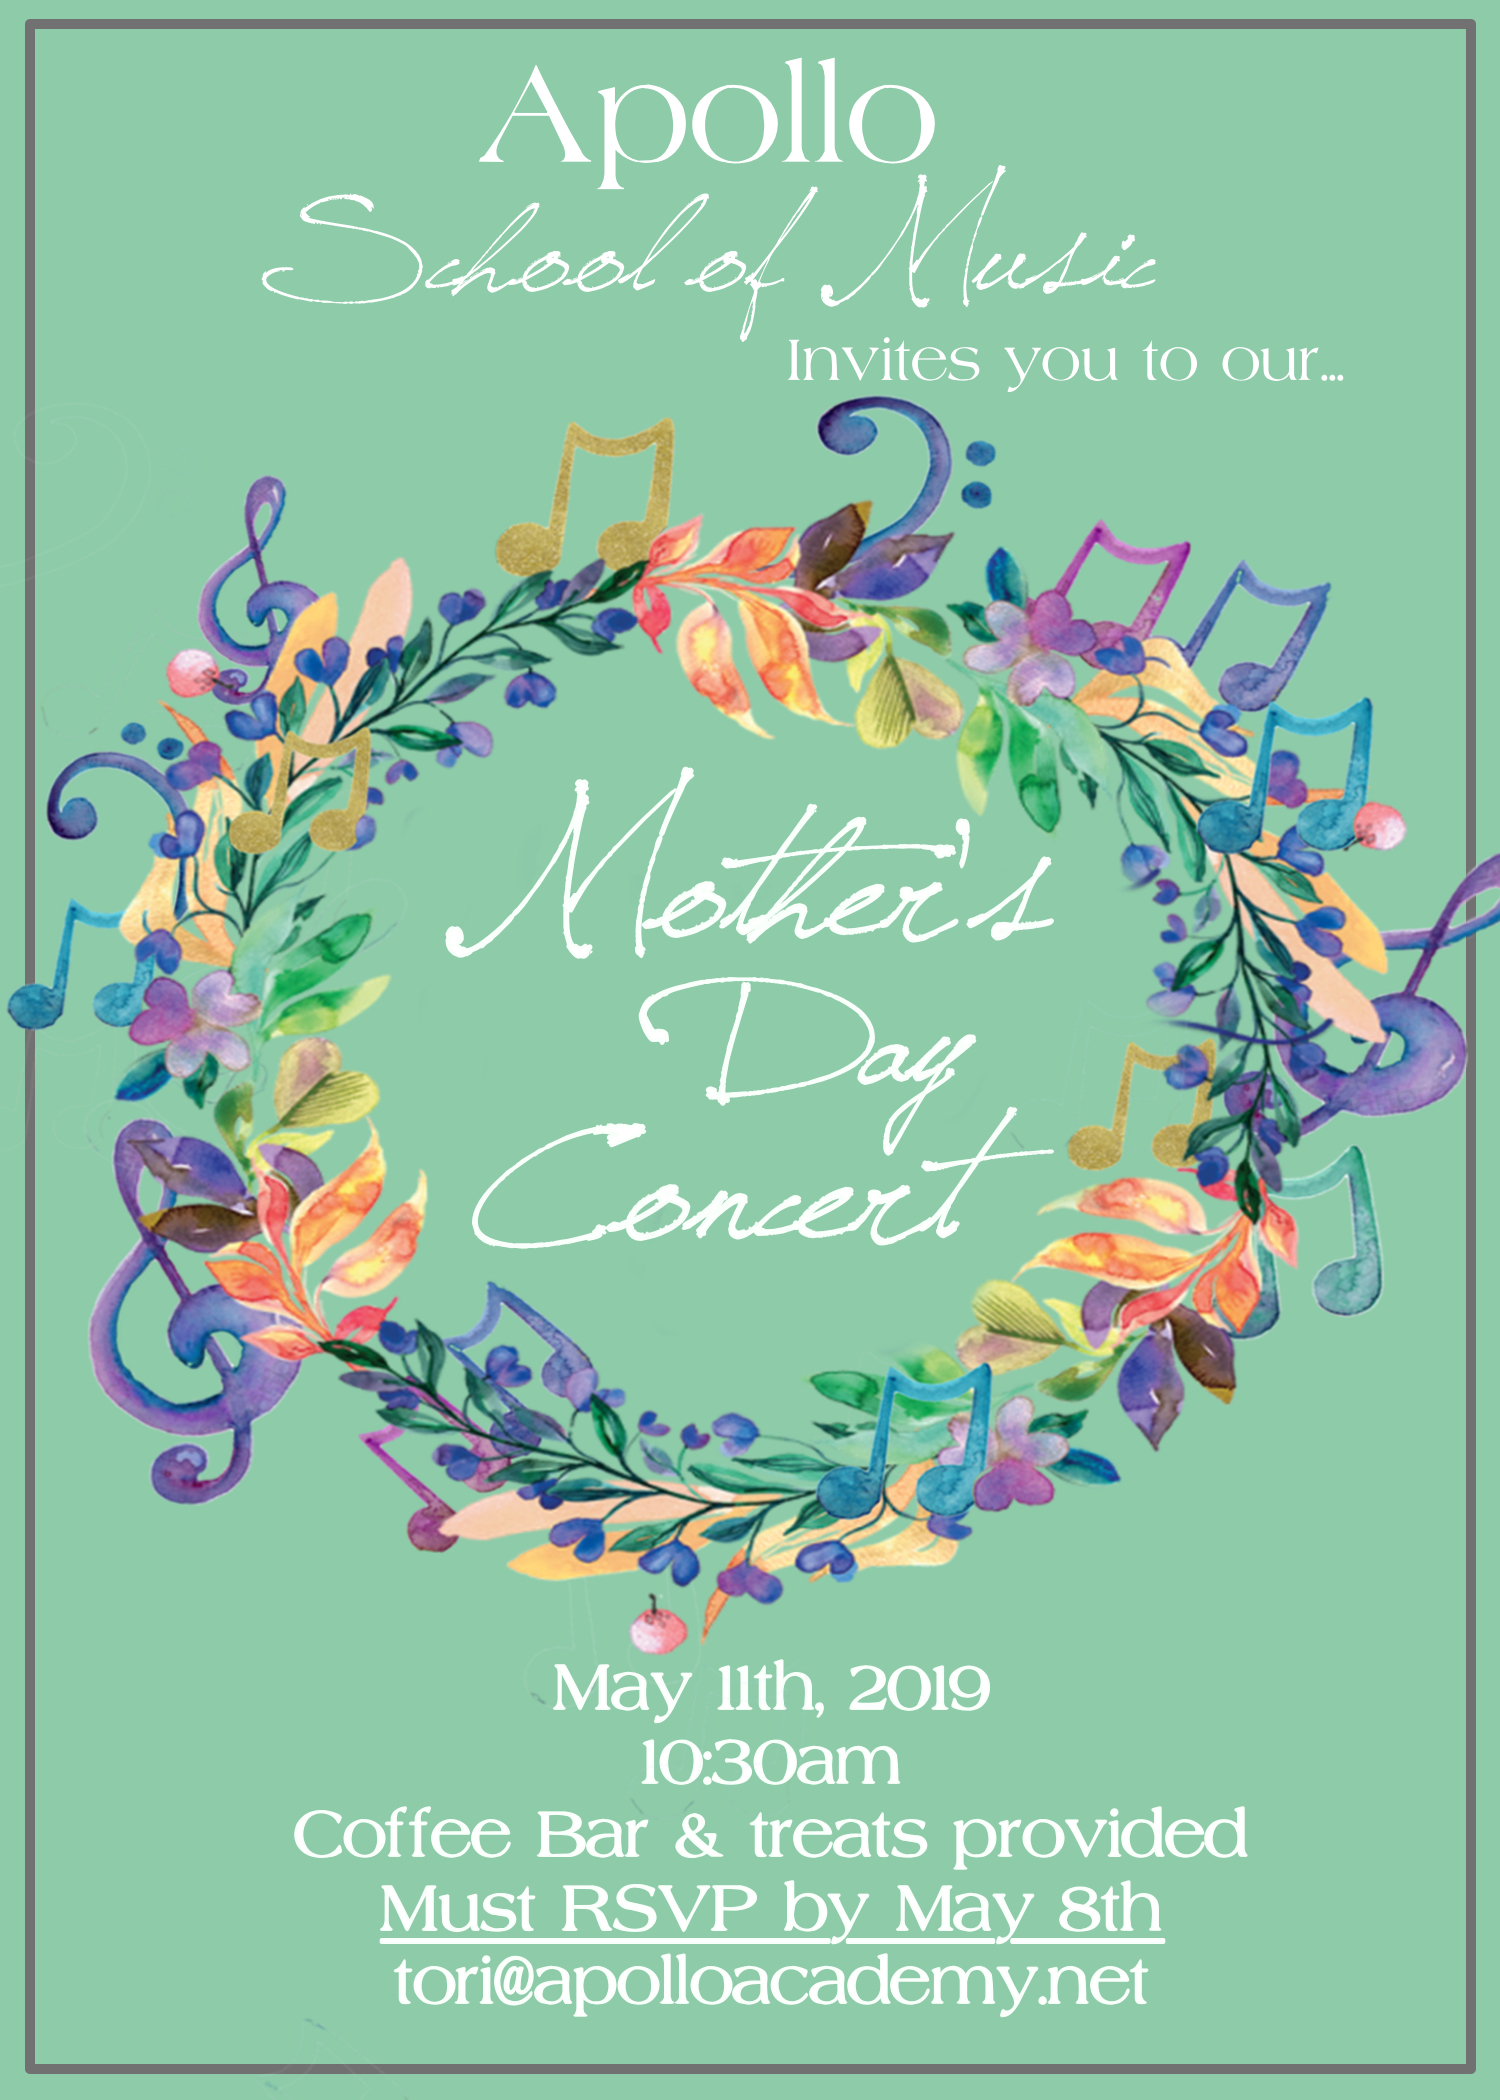 Apollo invites allMothers of chico to our... MOTHERS DAY CONCERT! - Come enjoy Coffee(provided by Chico Coffee Co.)& breakfast pastries while listeningto the performances byour wonderful students 10:30am-Noon